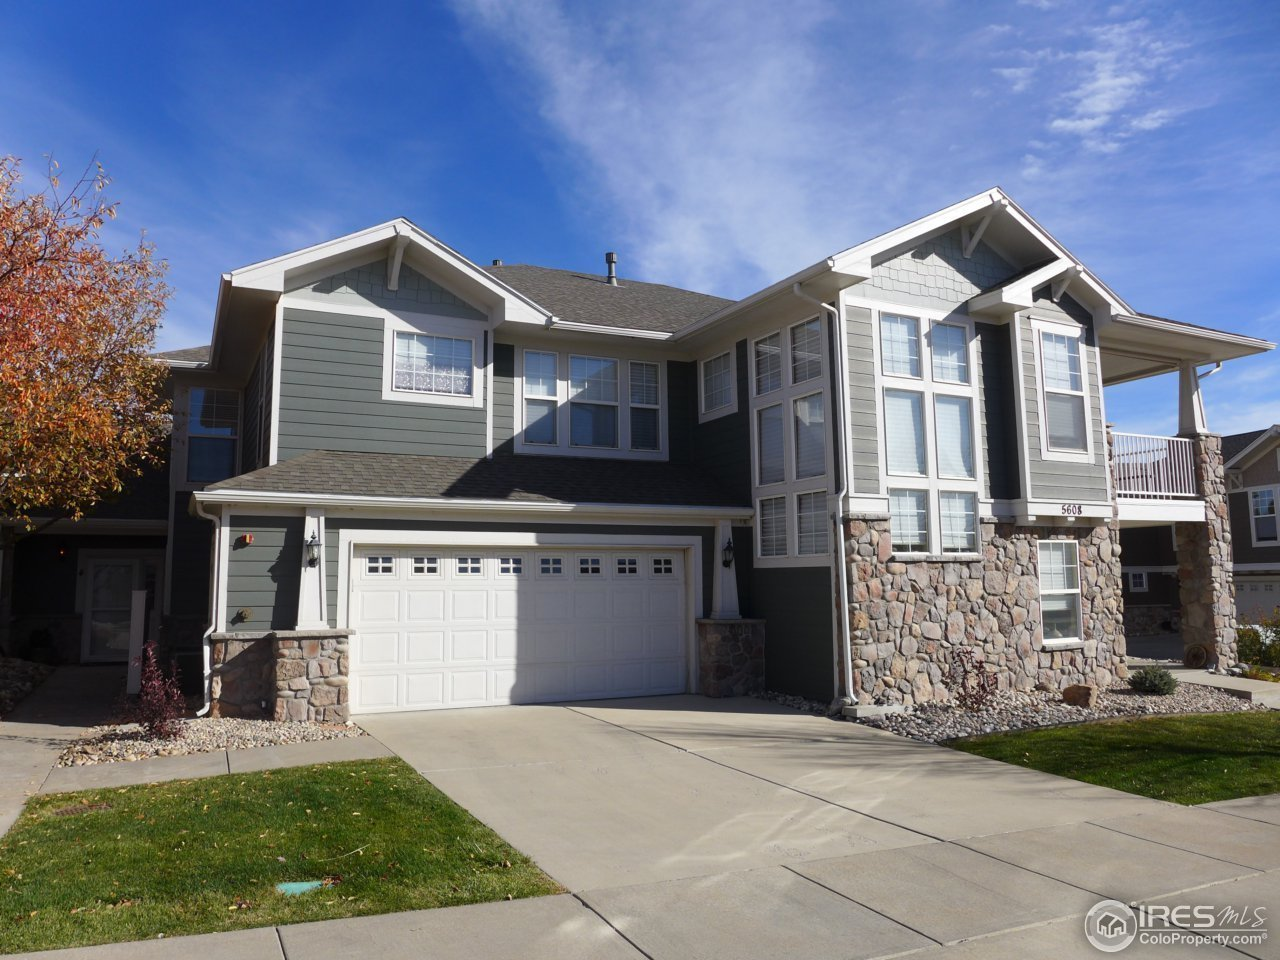 5608 condor dr, fort collins, co 80525 | mls# 835740 | redfin